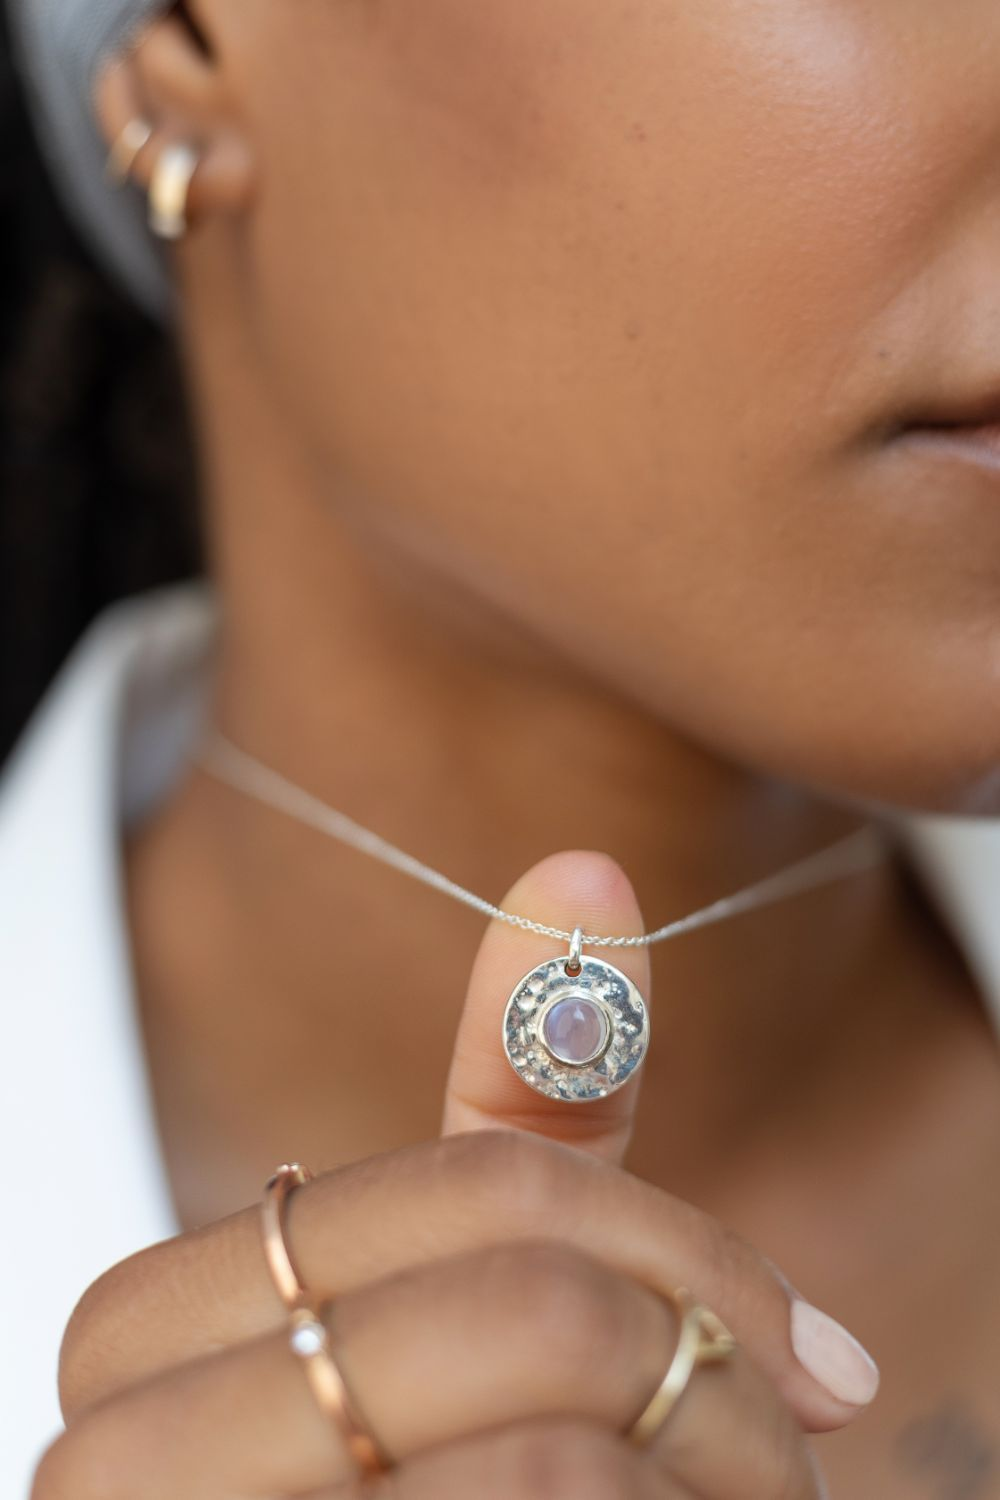 a woman's young model is wearing a Silver moonstone necklace - Cat eye